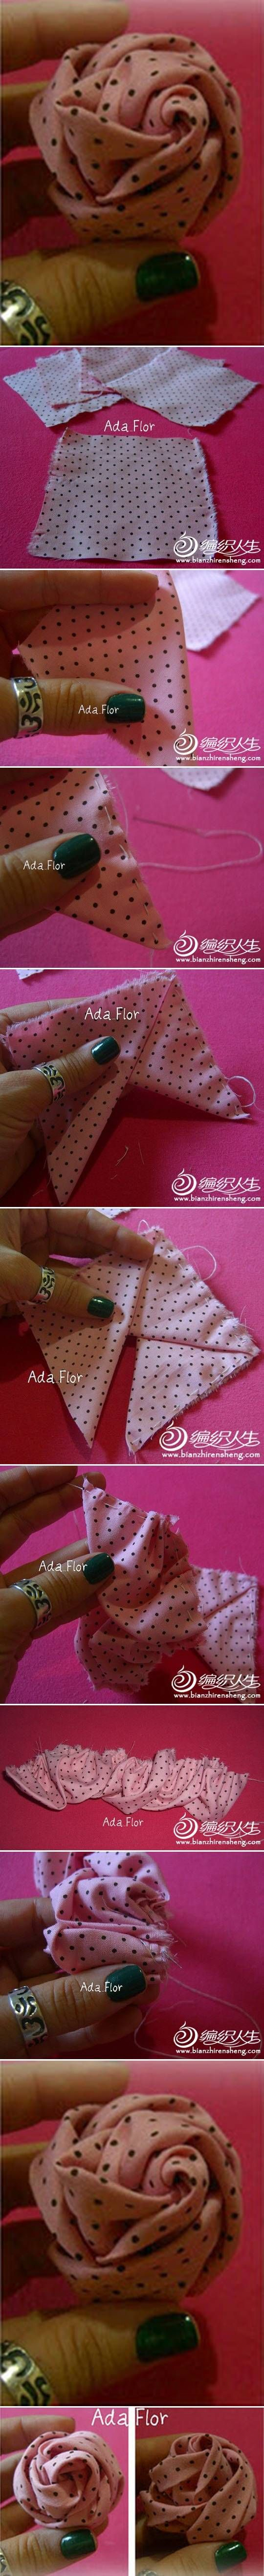 DIY Modular Fabric Rose DIY Projects